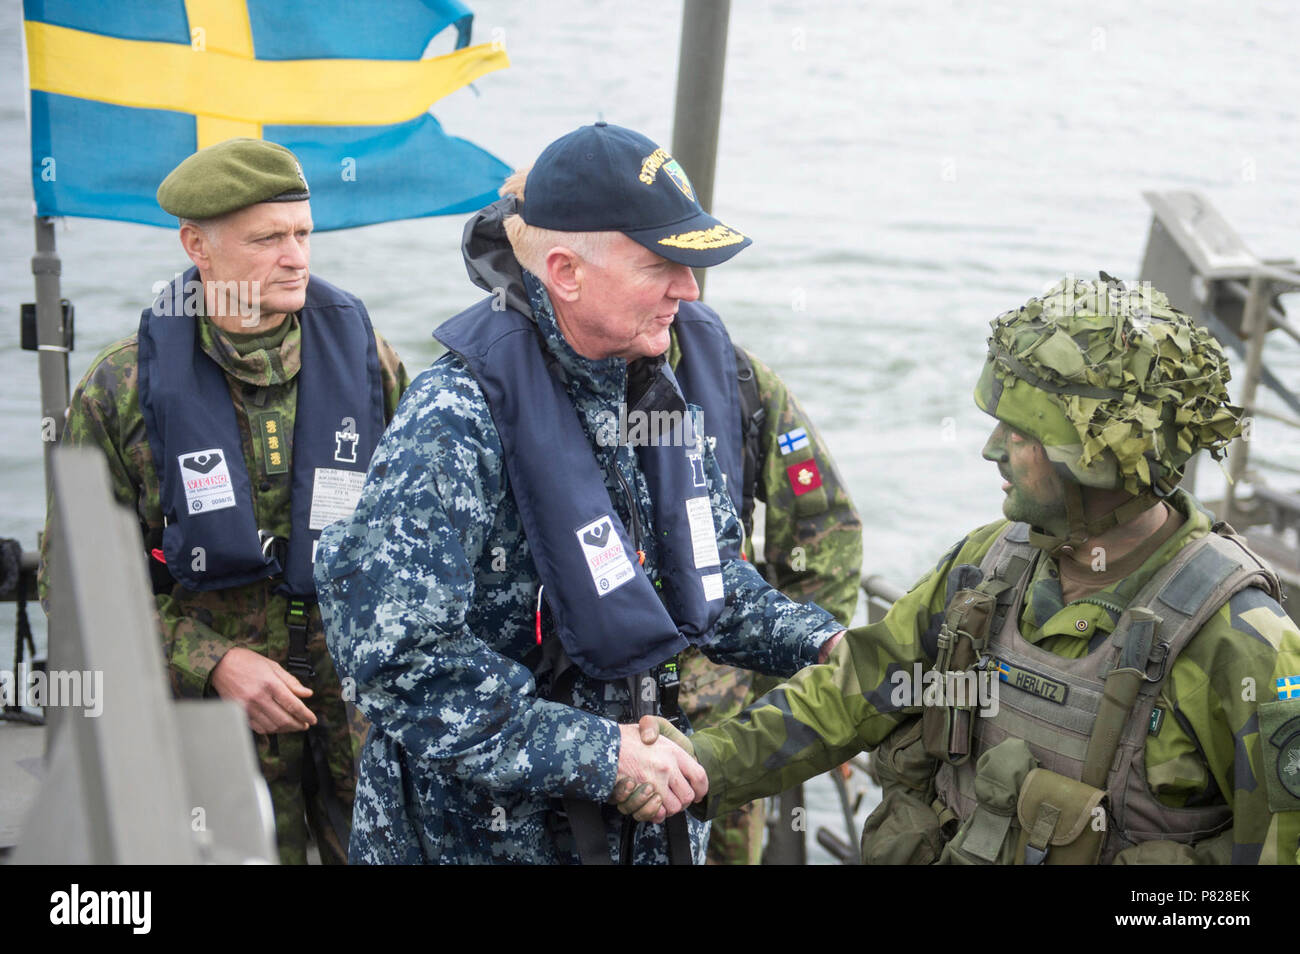 BUSO, Finland (June 8, 2016) - Vice Admiral James Foggo III, commander, Naval Striking and Support Forces NATO, and commander, U.S. 6th Fleet shakes hands with a member of the Swedish Marines during BALTOPS 2016.  BALTOPS is an annual recurring multinational exercise designed to improve interoperability, enhance flexibility and demonstrate the resolve of allied and partner nations to defend the Baltic region. Stock Photo